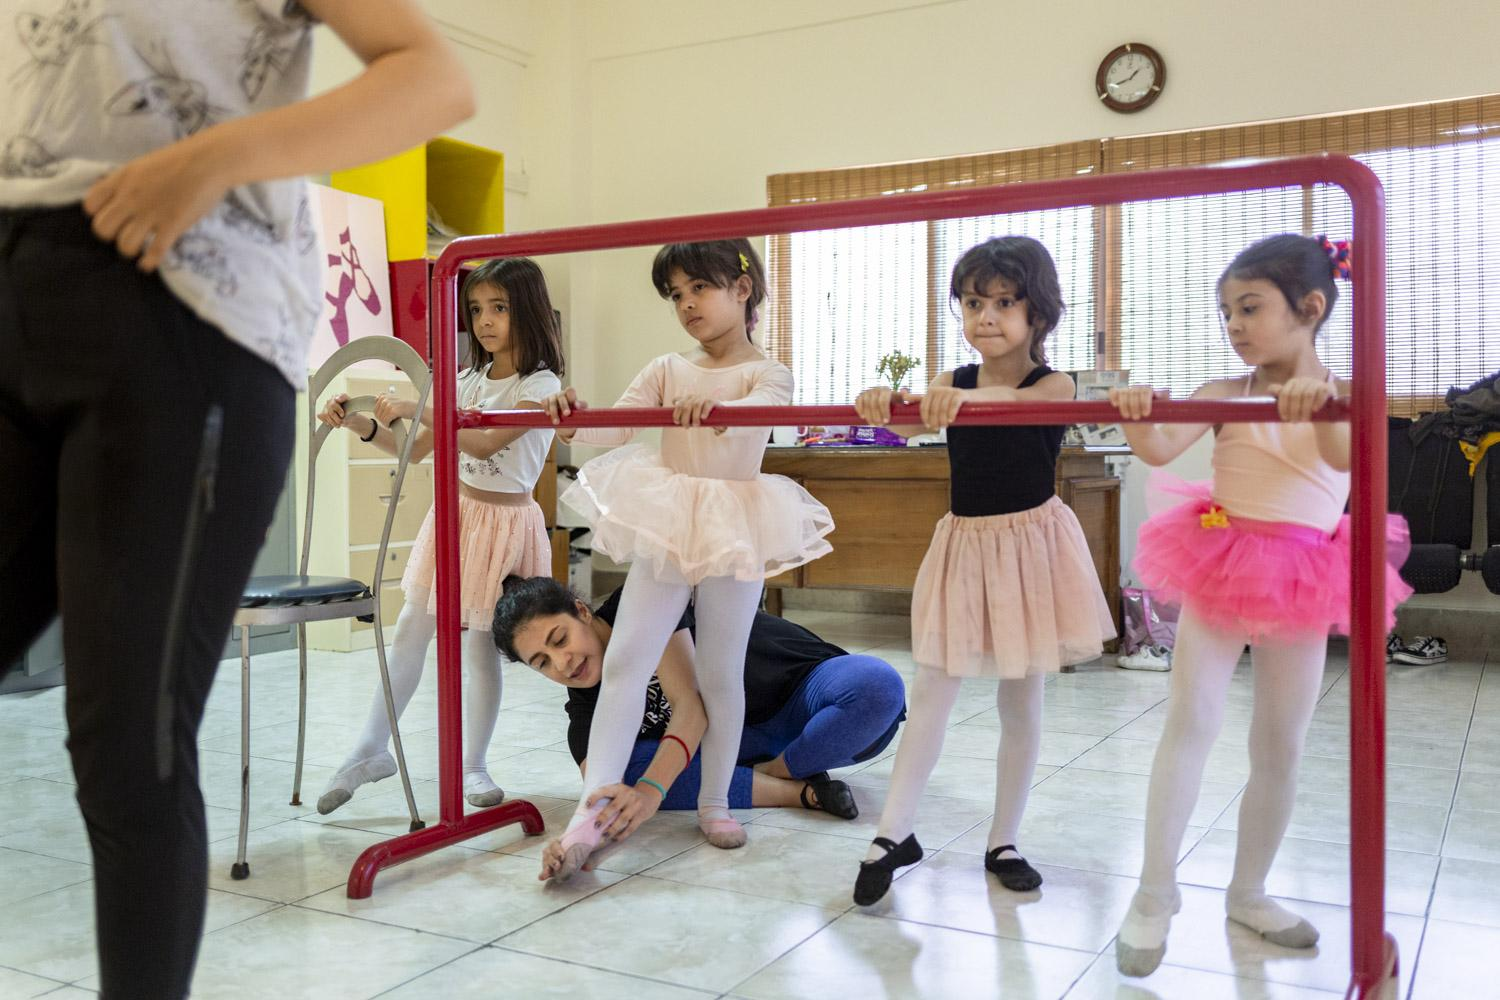 While 27% of Iranians below 25 years are unemployed, young dancers can work as dance instructors. Reyhaneh (22) teaches several times a week and mainly spends her income on dance lessons and travelling.